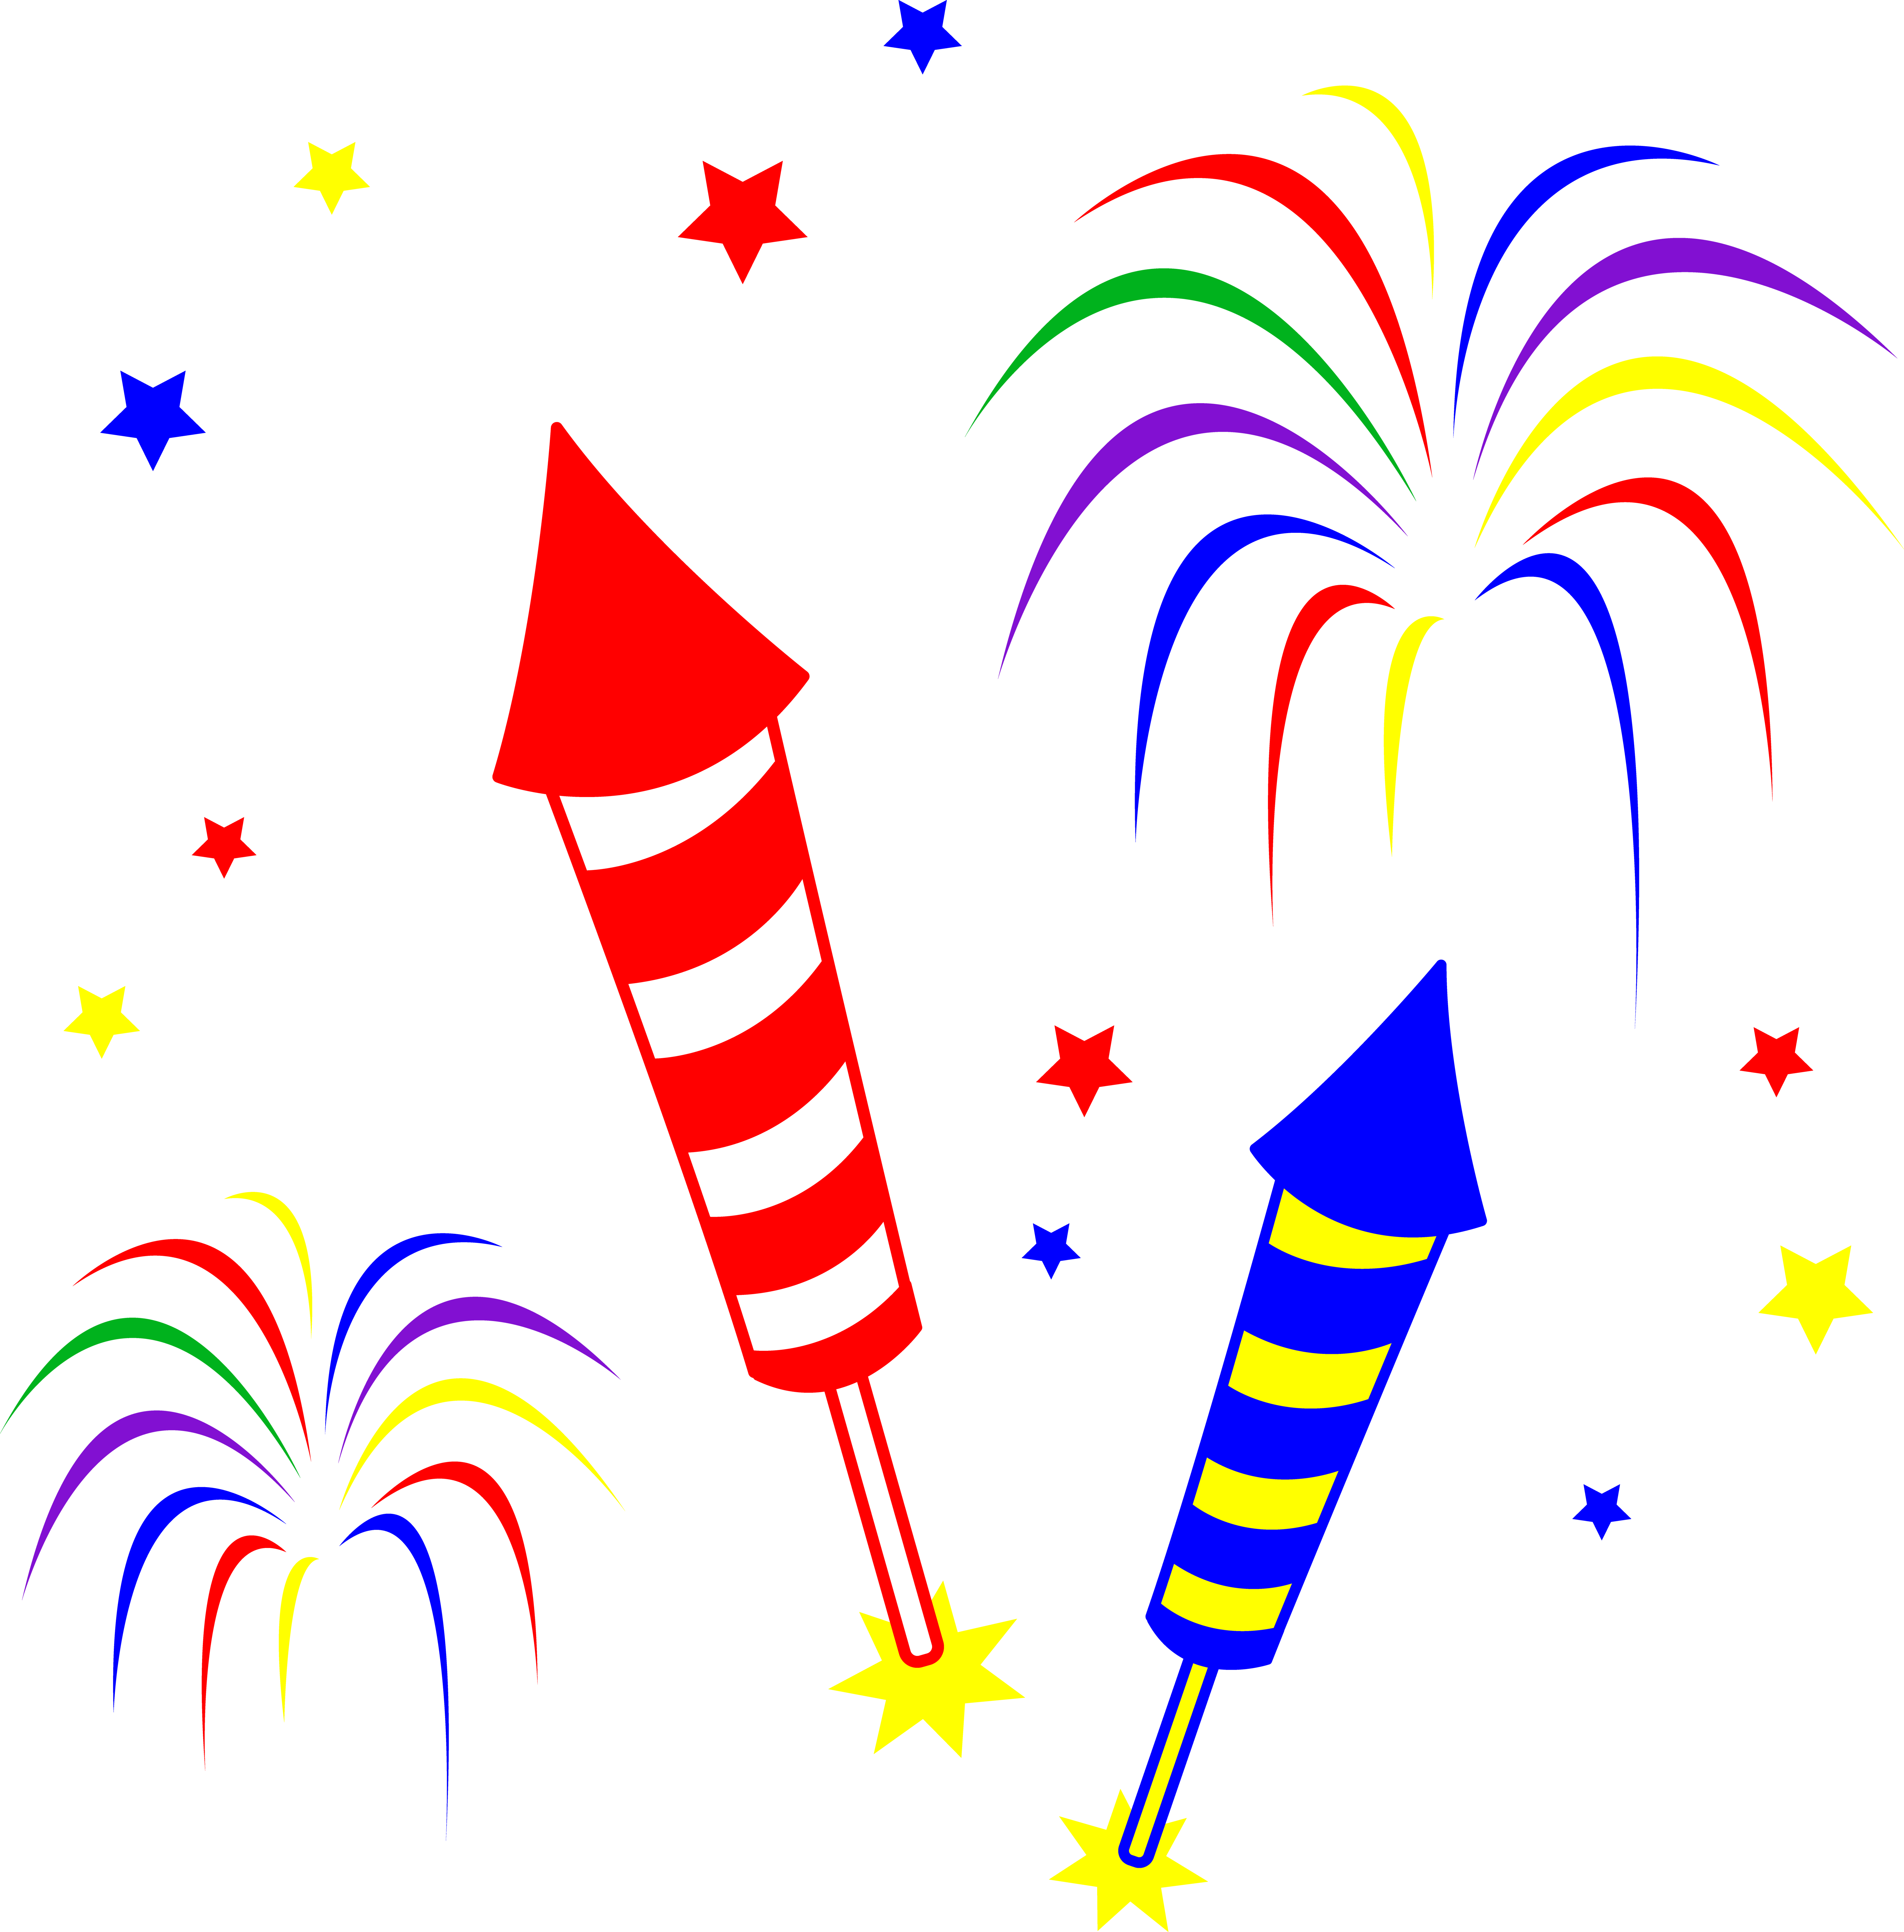 Rocket clipart animated Fireworks art Day Clip Of